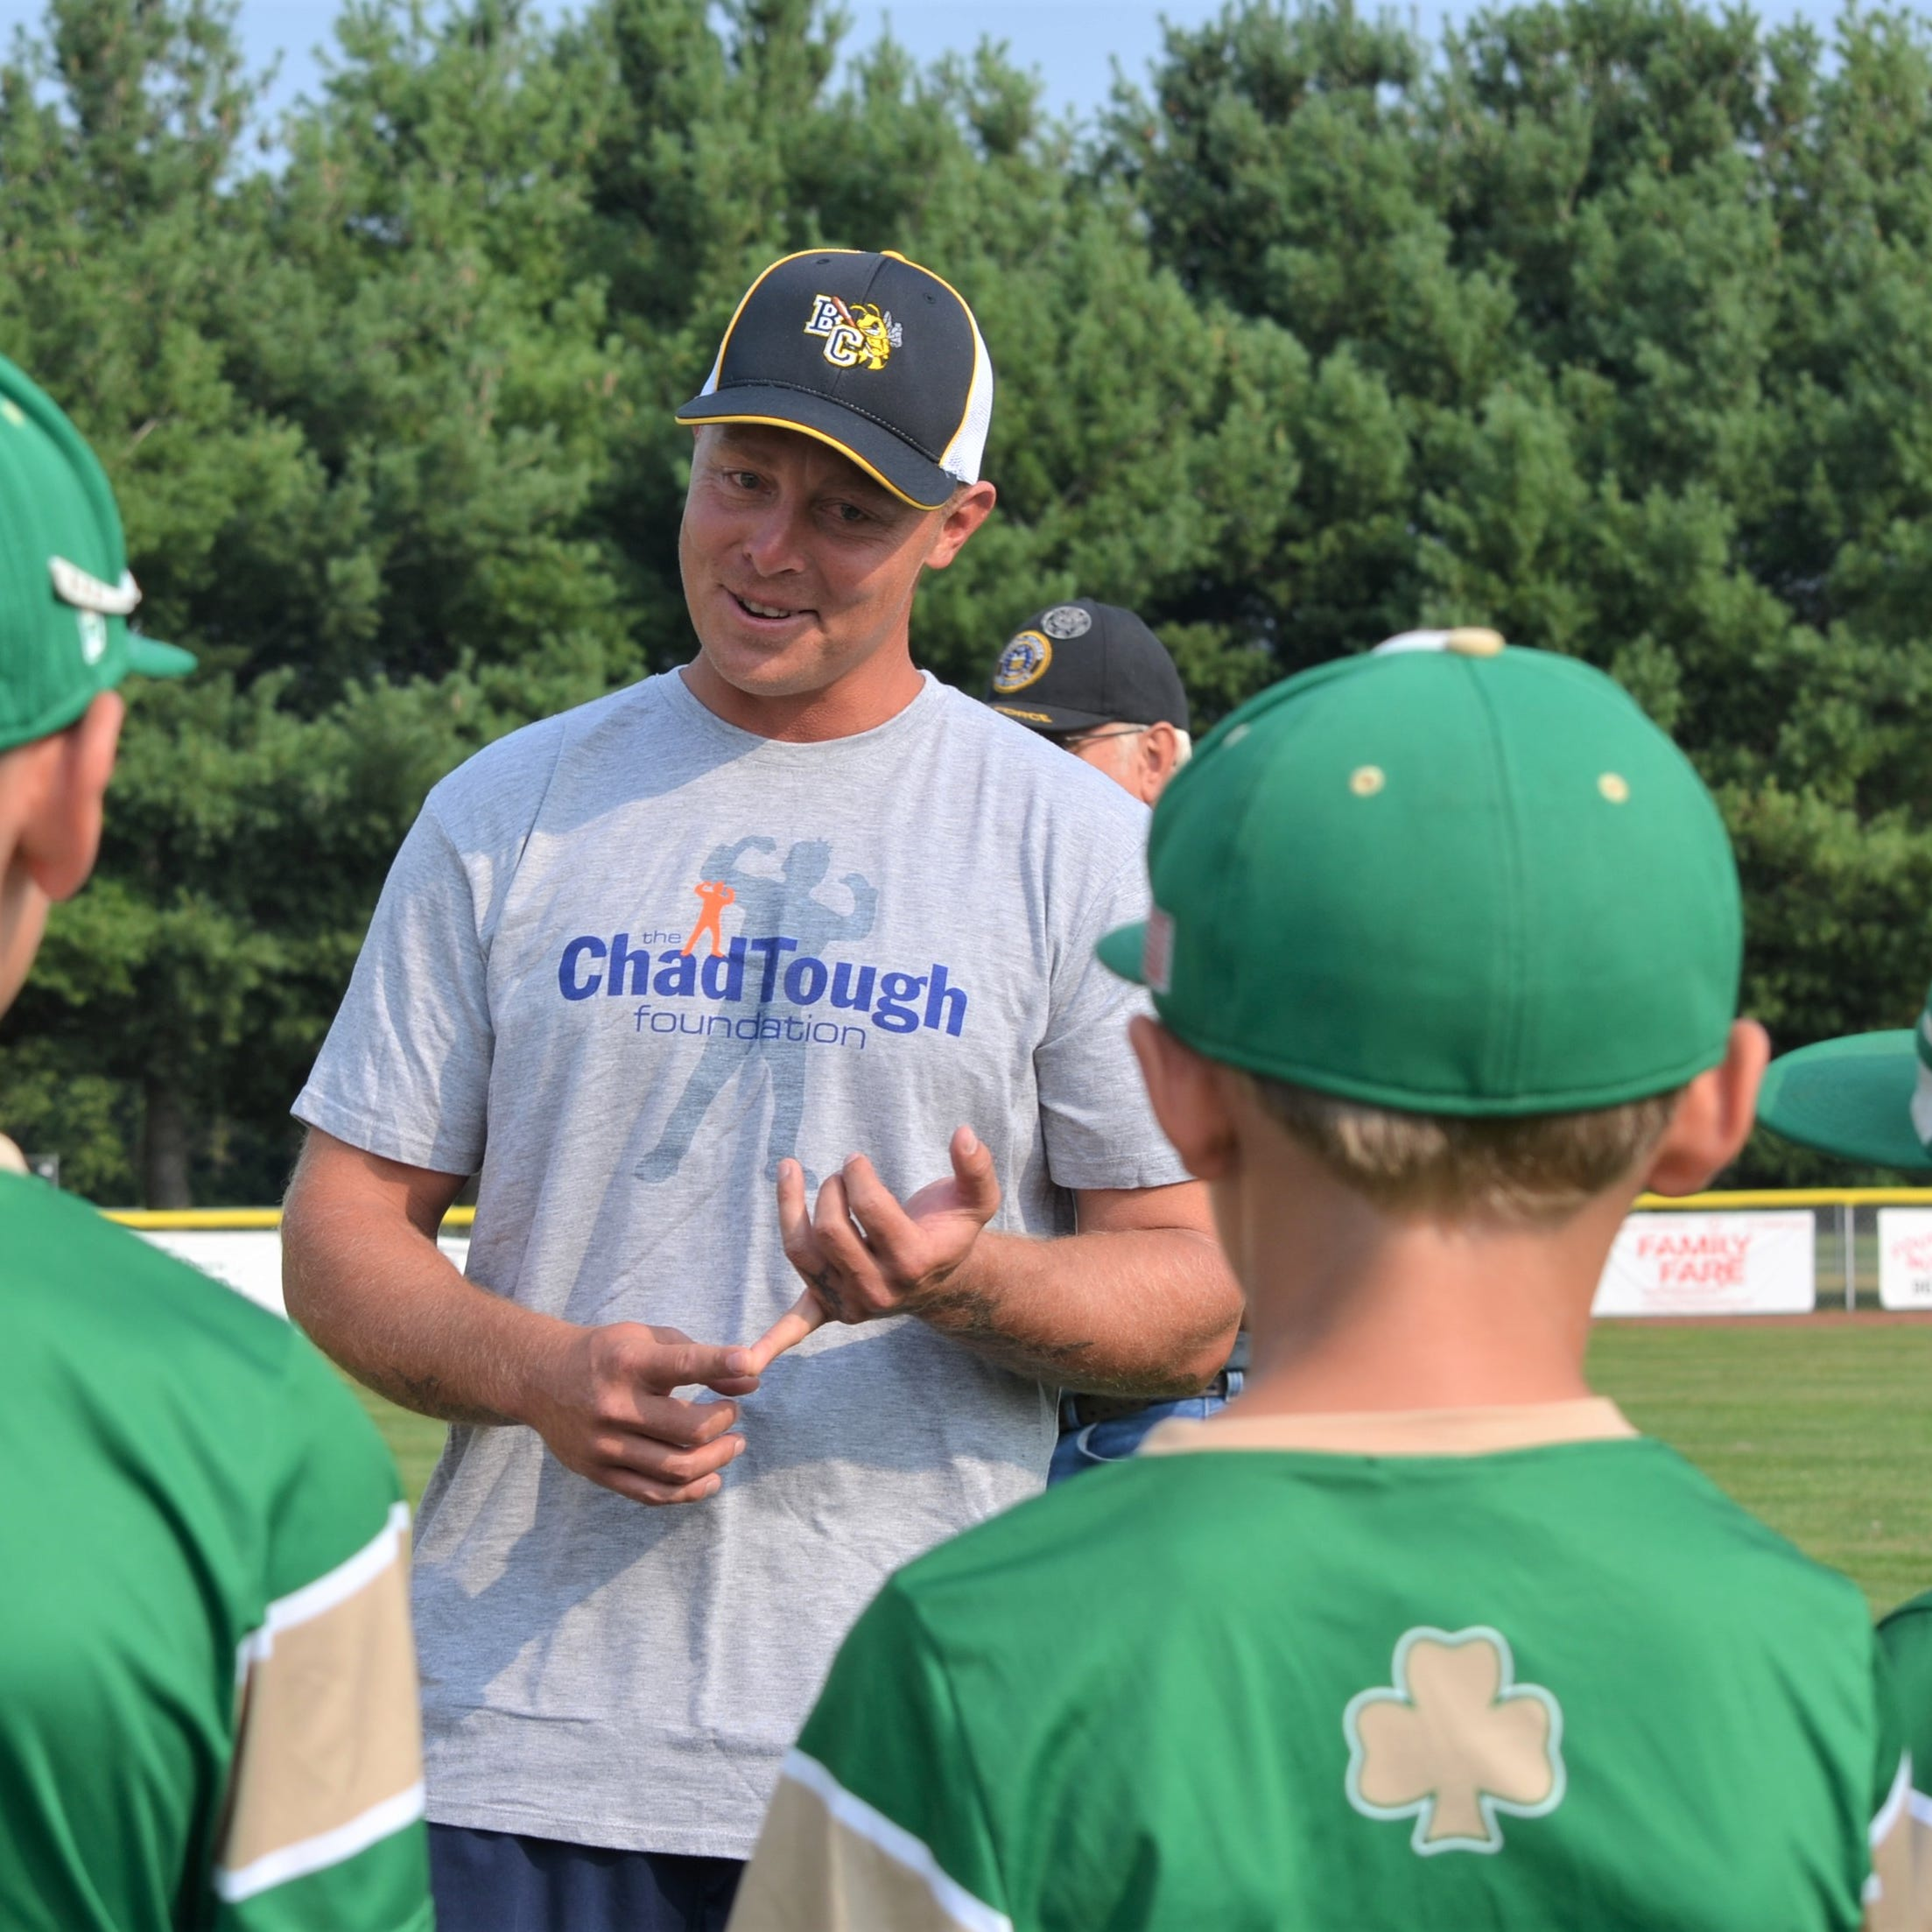 Former Detroit Tiger Brandon Inge is coach for a day for Battle Creek youth players